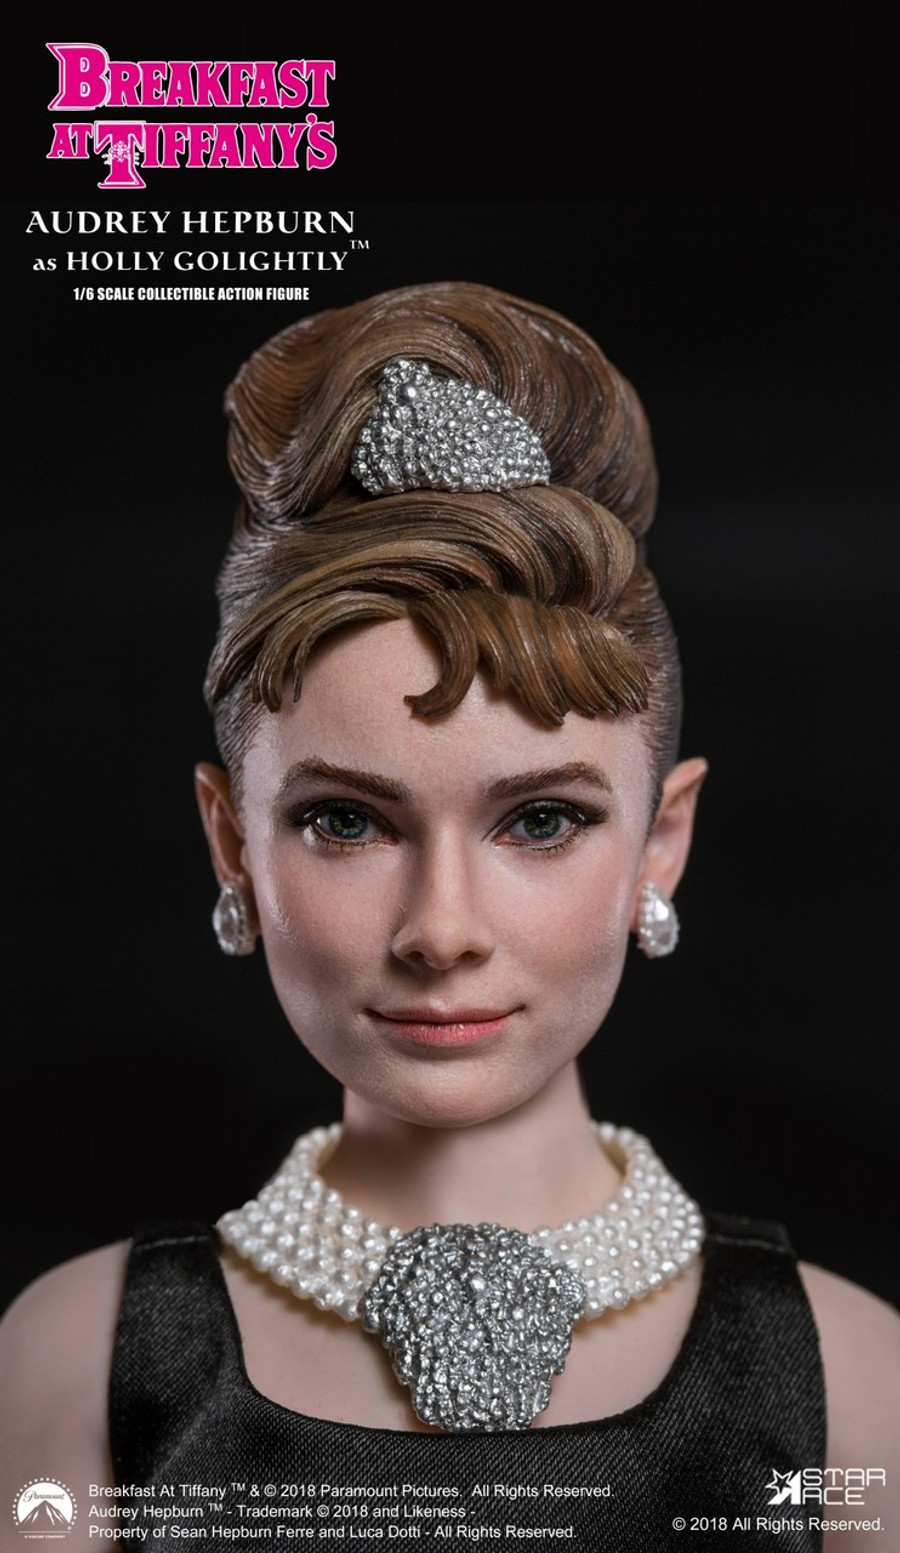 Star Ace - Audrey Hepburn as Holly Golightly Deluxe Version